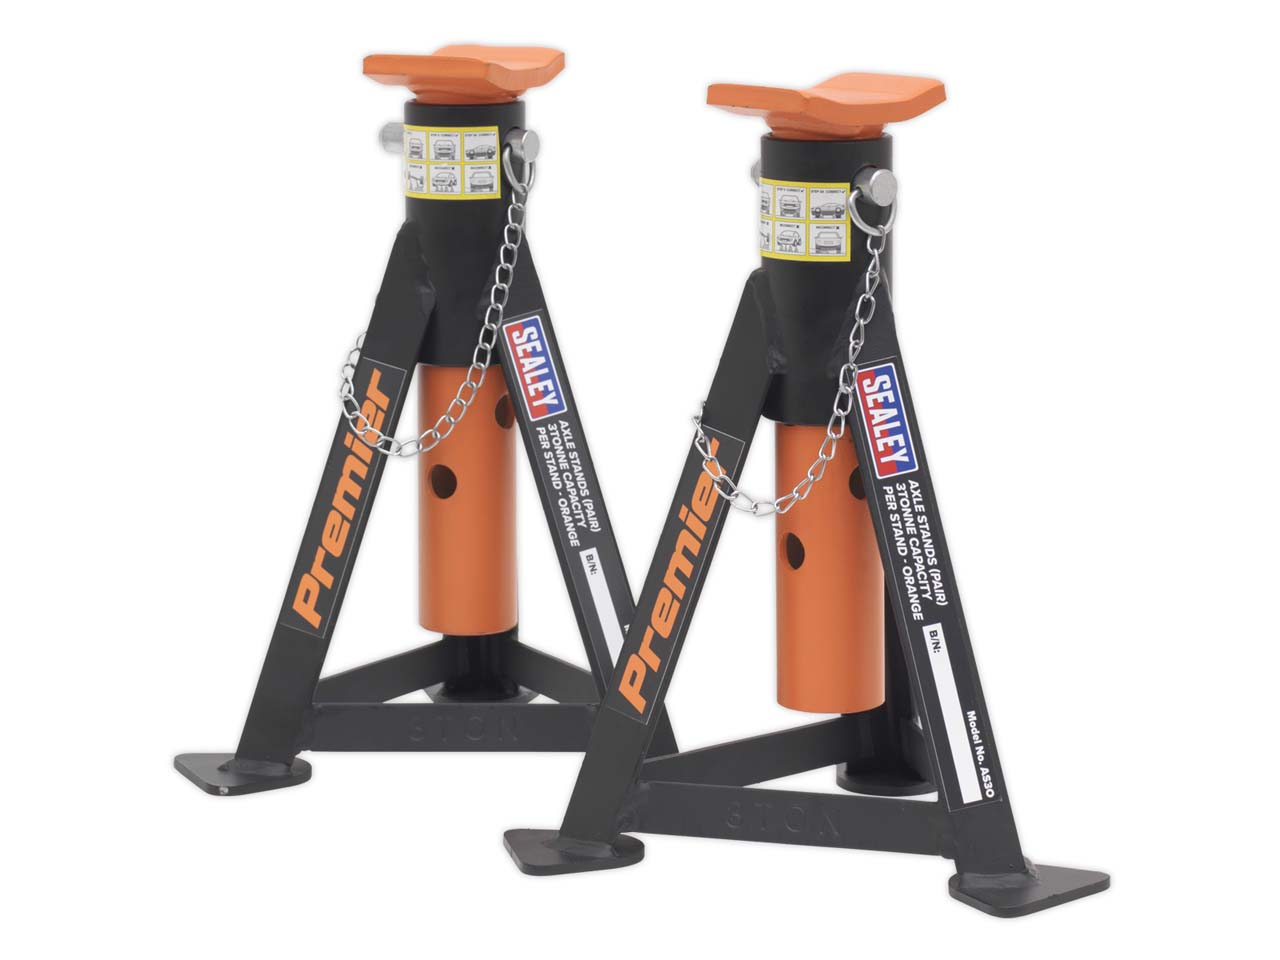 Sealey 3010CX 3tonne Standard Chassis Trolley Jack with Axle Stands Pair